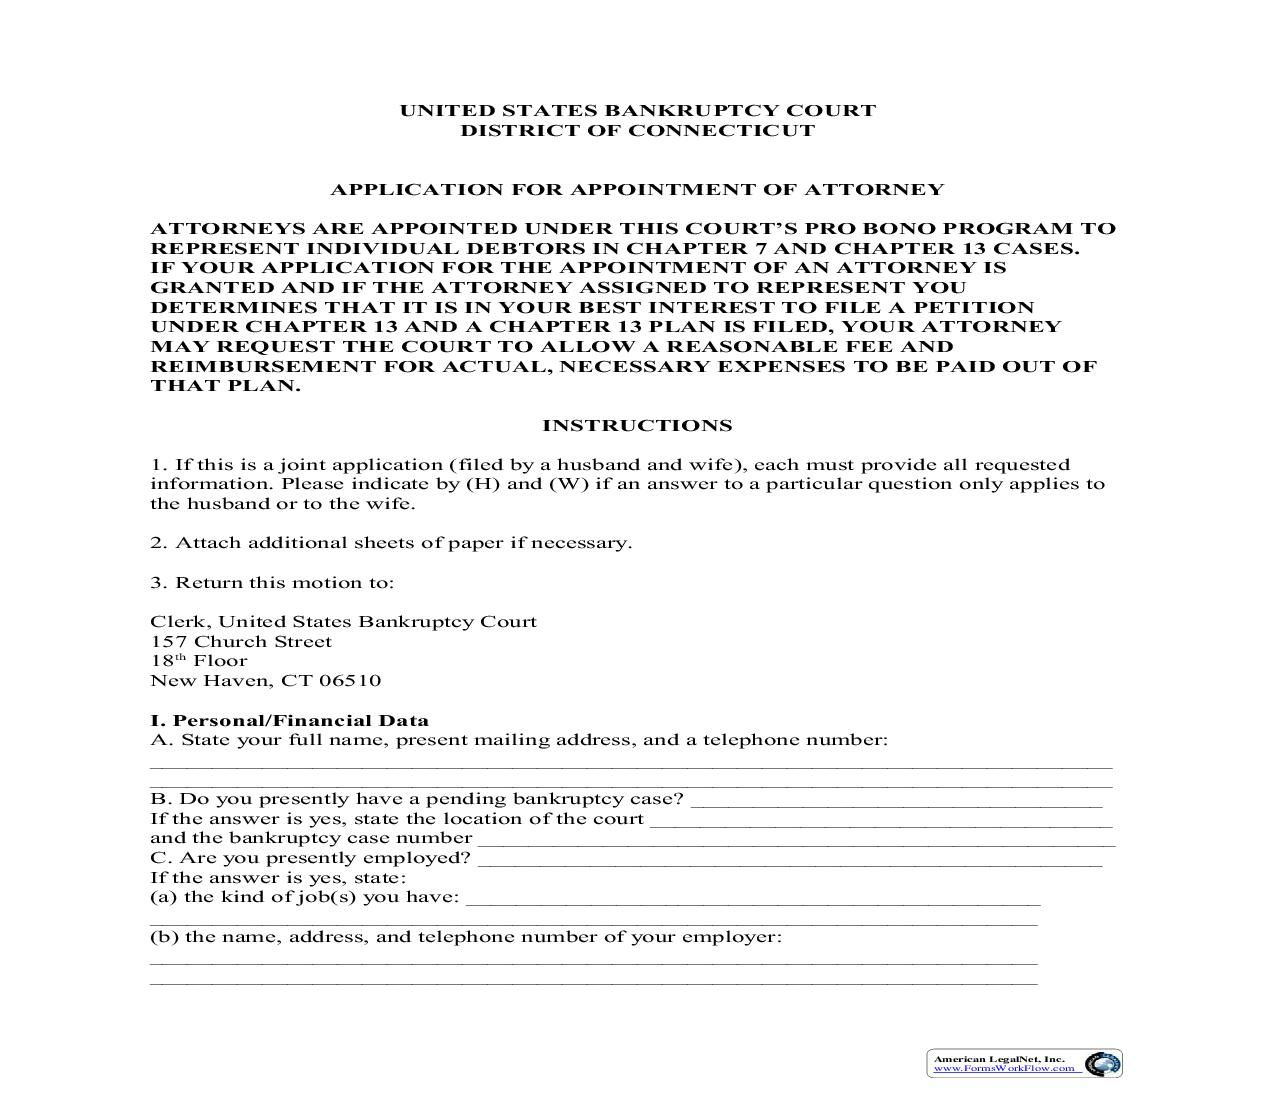 This is a Connecticut form that can be used for Bankruptcy